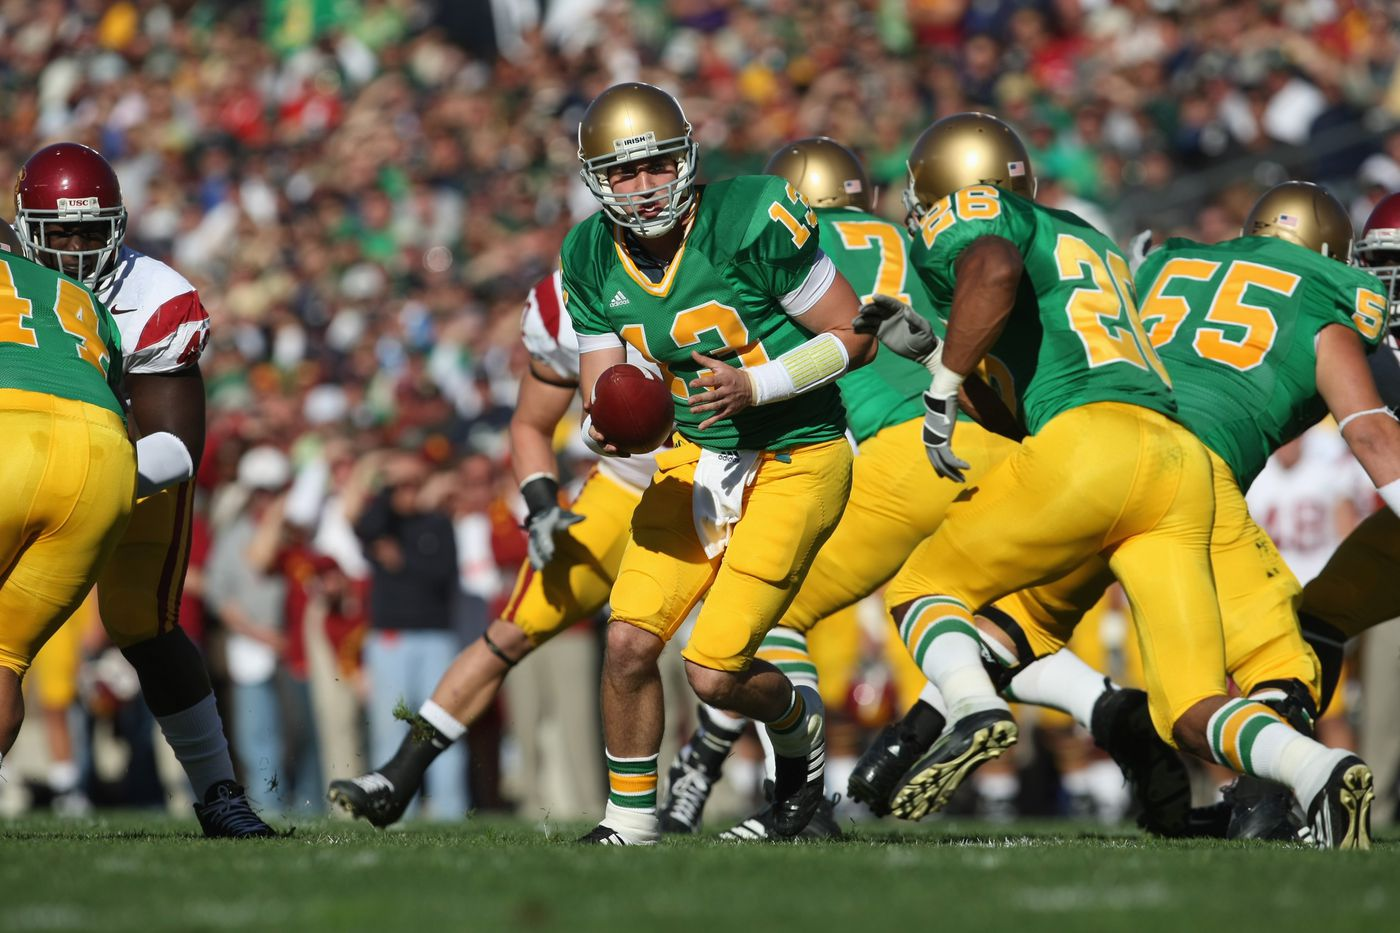 sale retailer 51ce9 69f2b Notre Dame green alternate jerseys have nearly 100-year ...